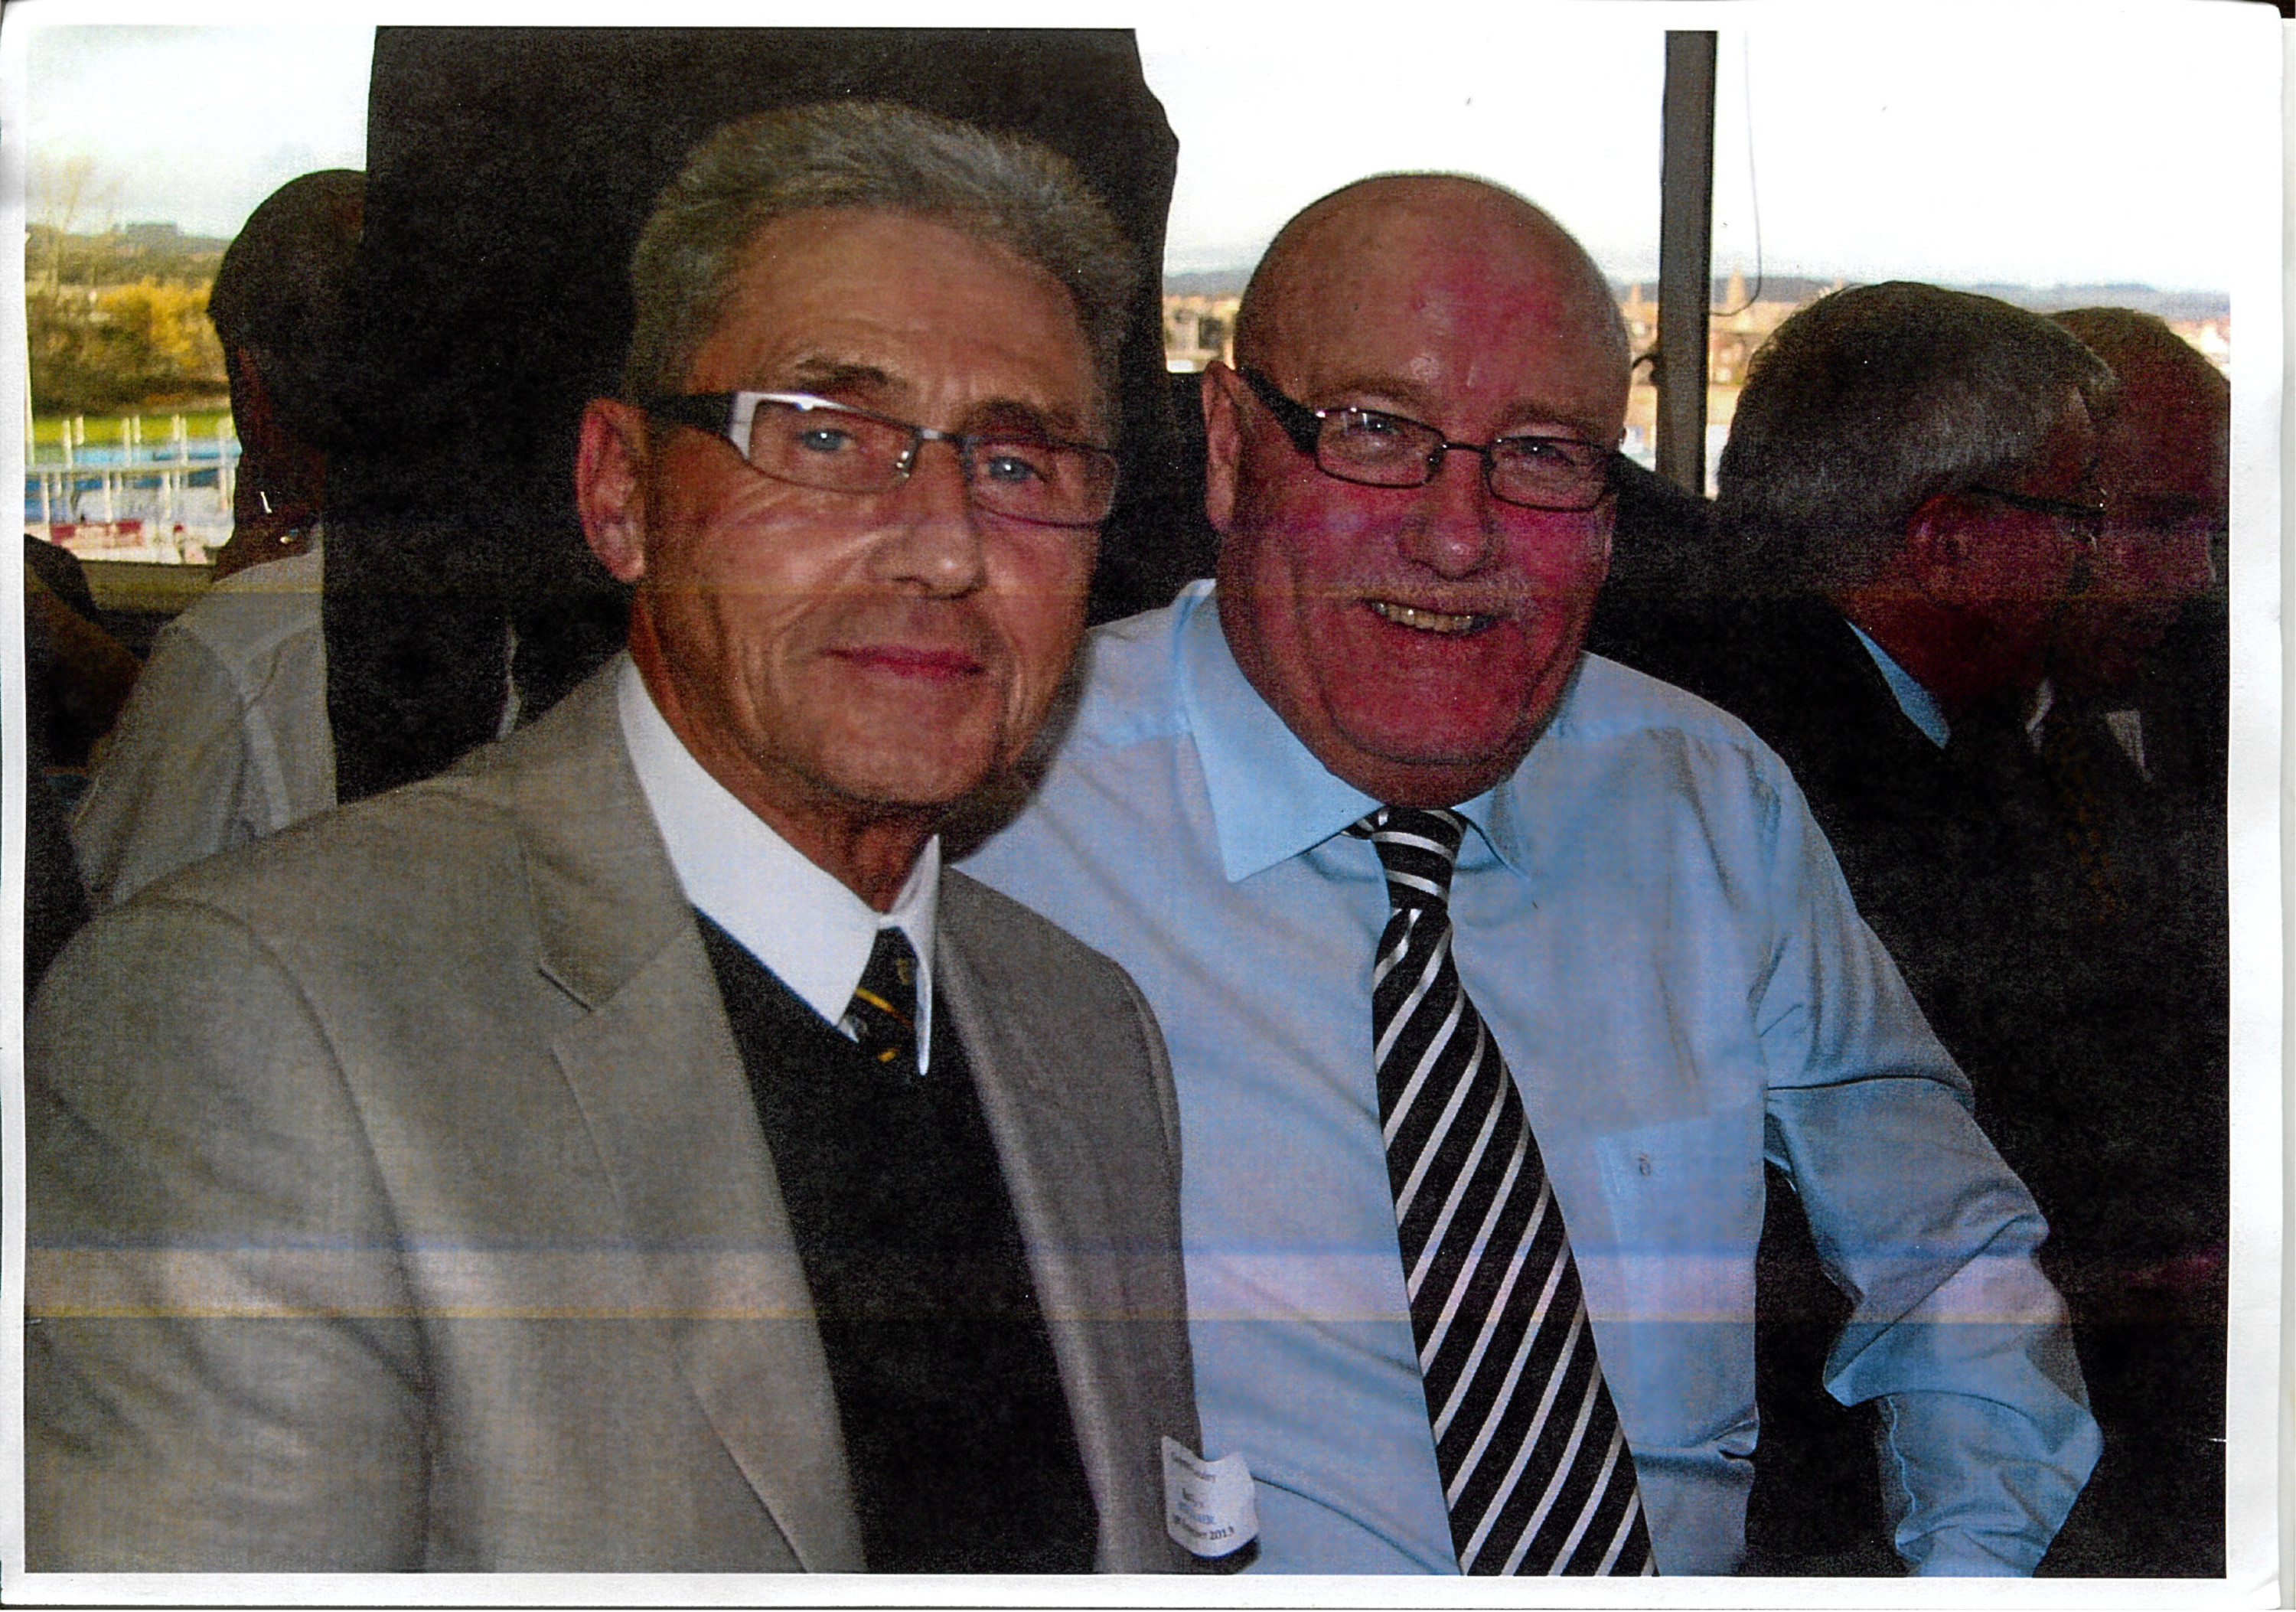 Jim Finlayson and I at an East fife reunion a couple of years ago at Bayview.